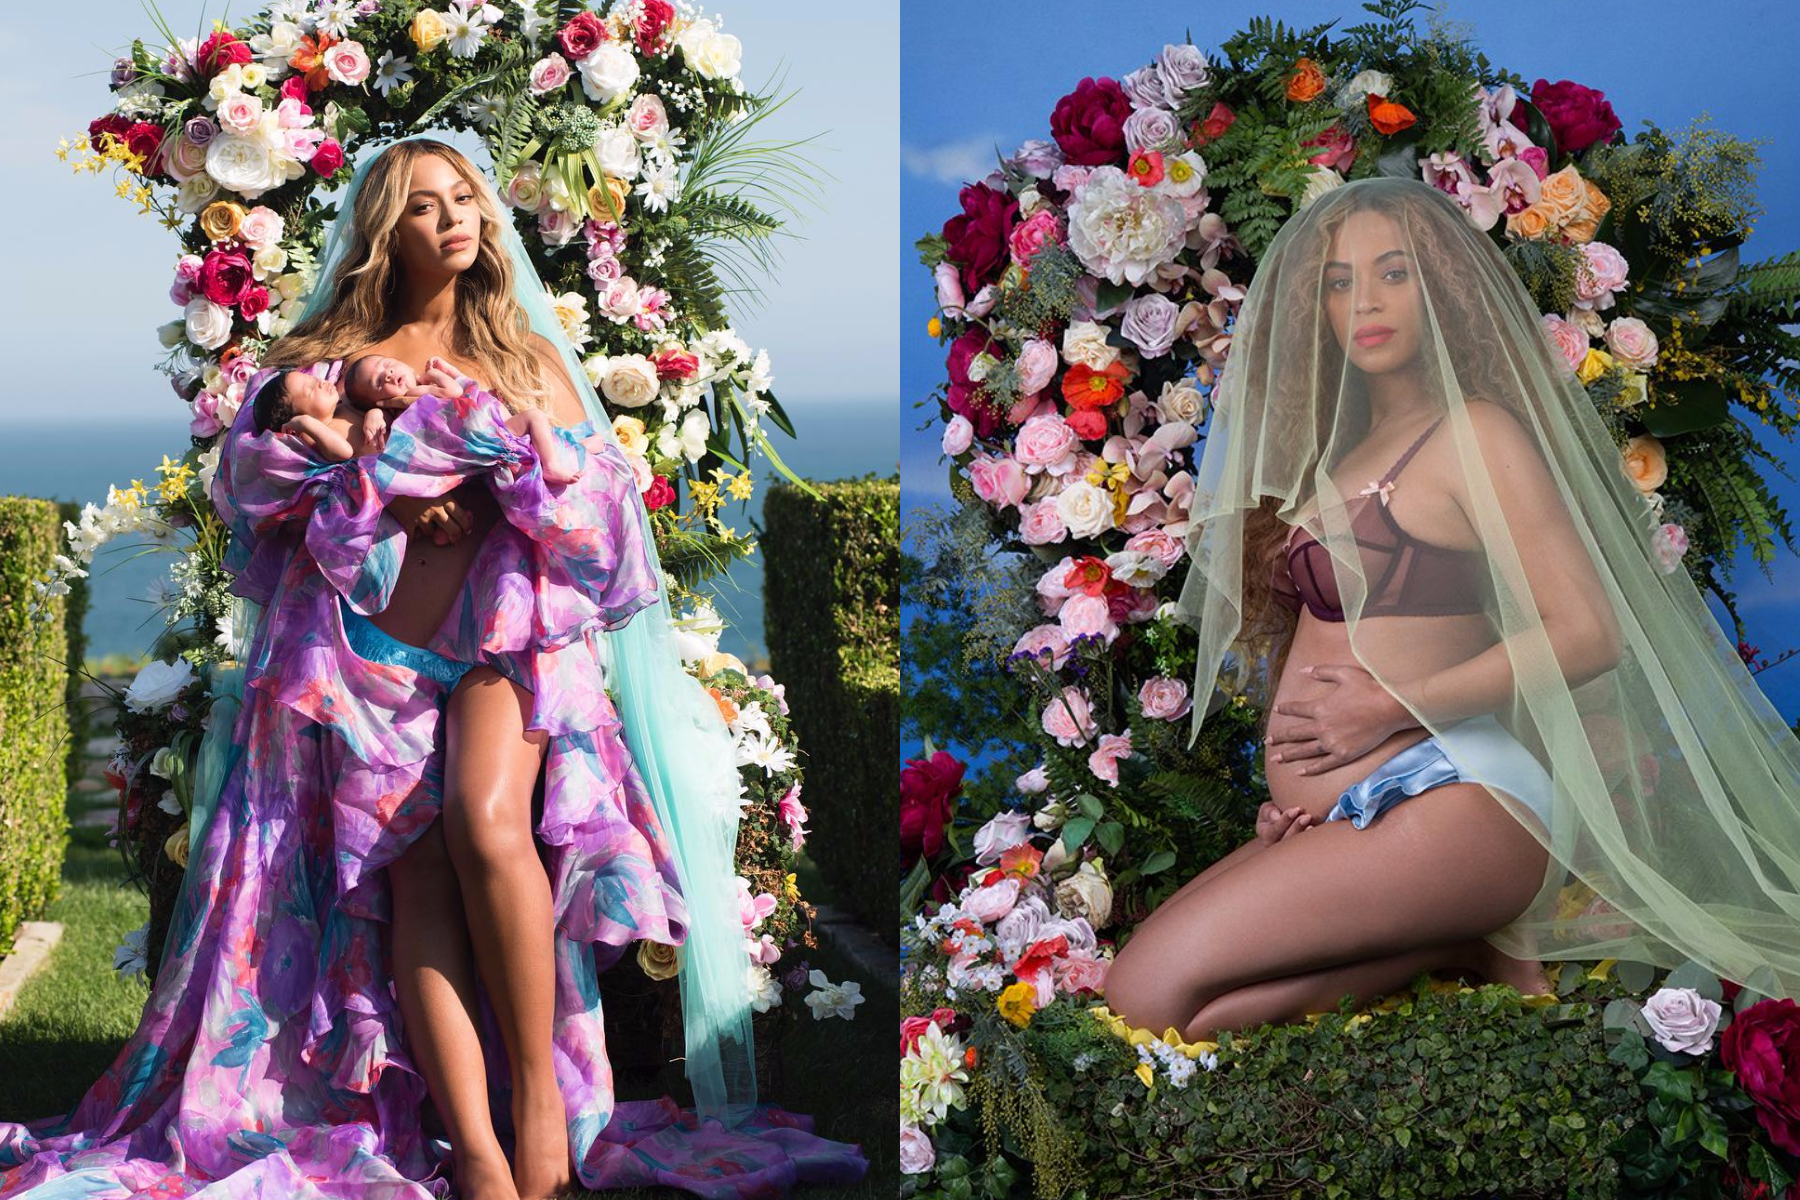 Beautiful Beyonce and her twins - The interesting story behind her dramatic dress